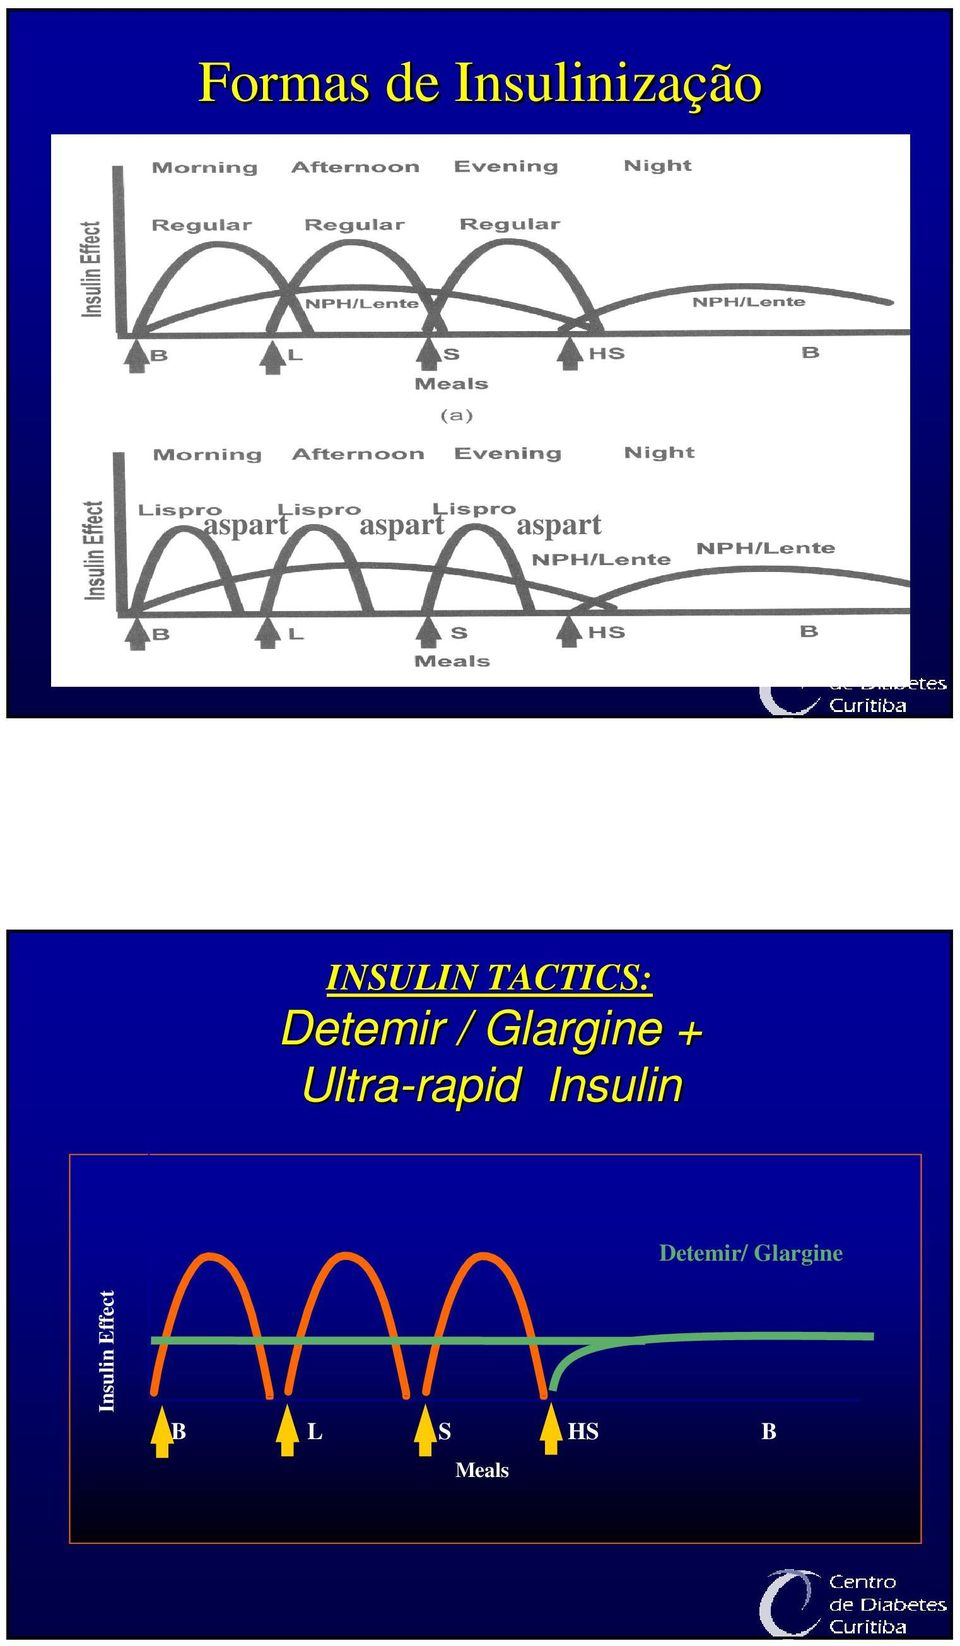 Glargine + Ultra-rapid rapid Insulin